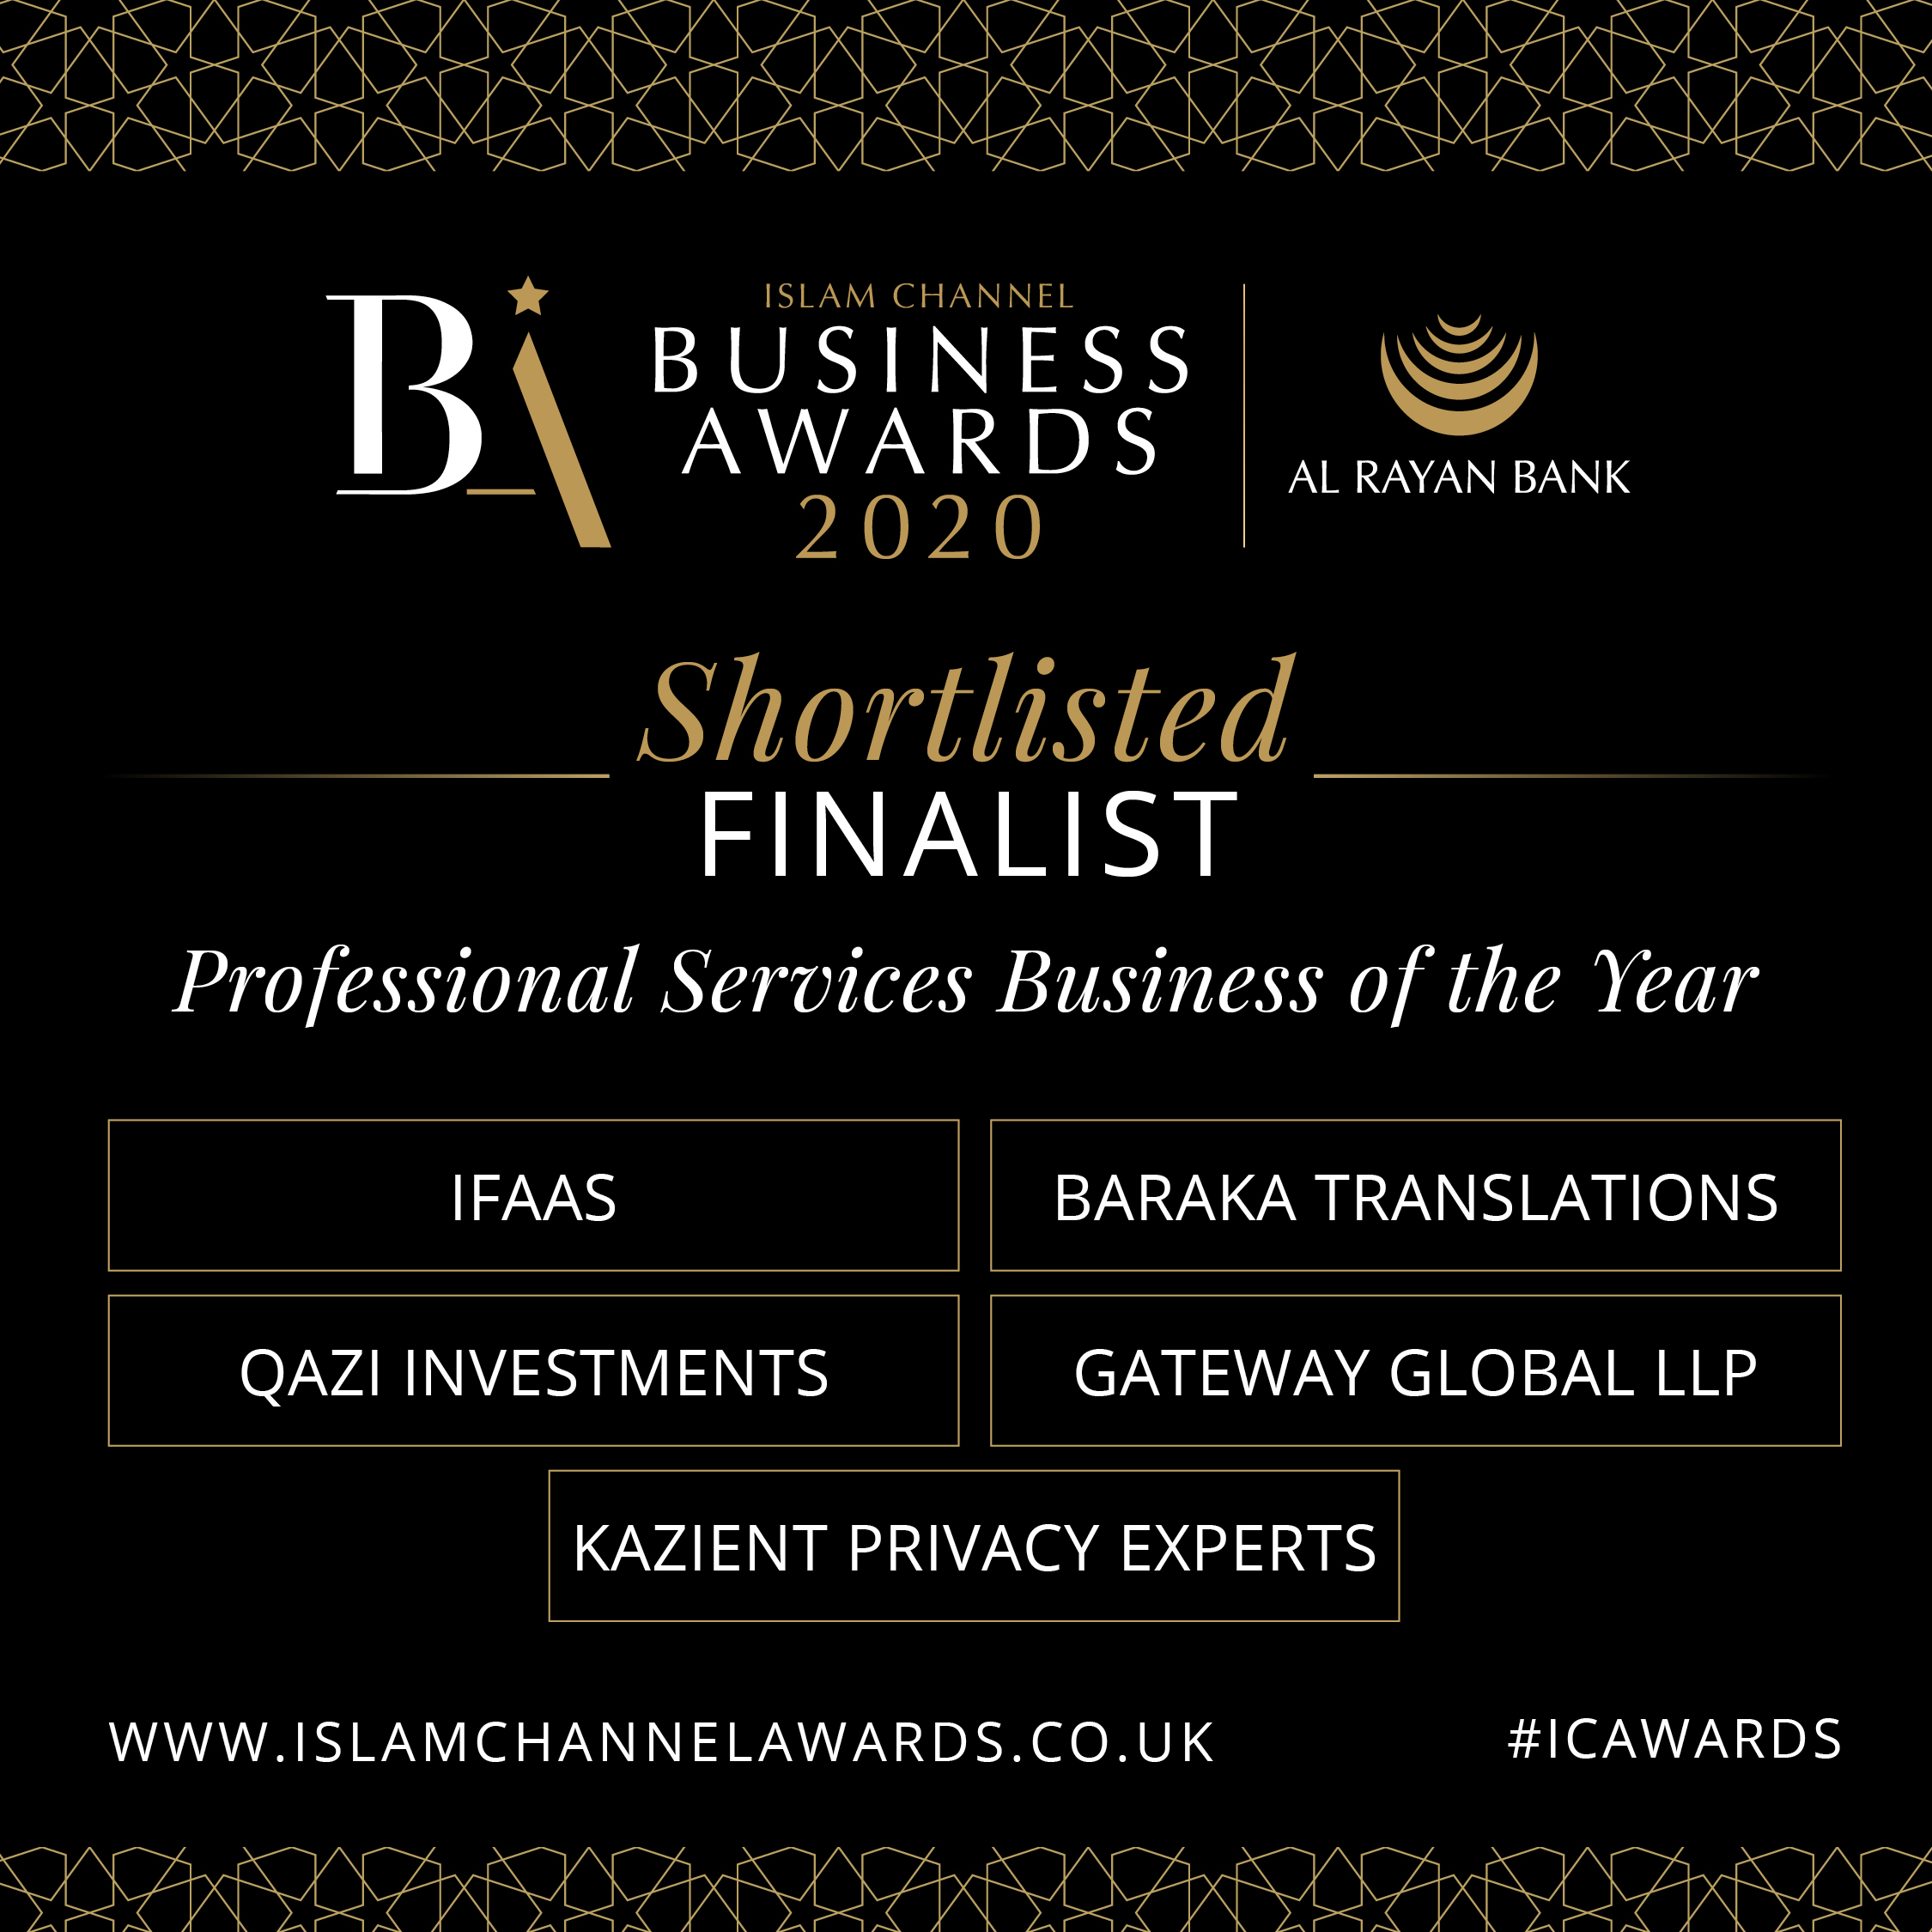 Finalist Professional Services Business of the Year